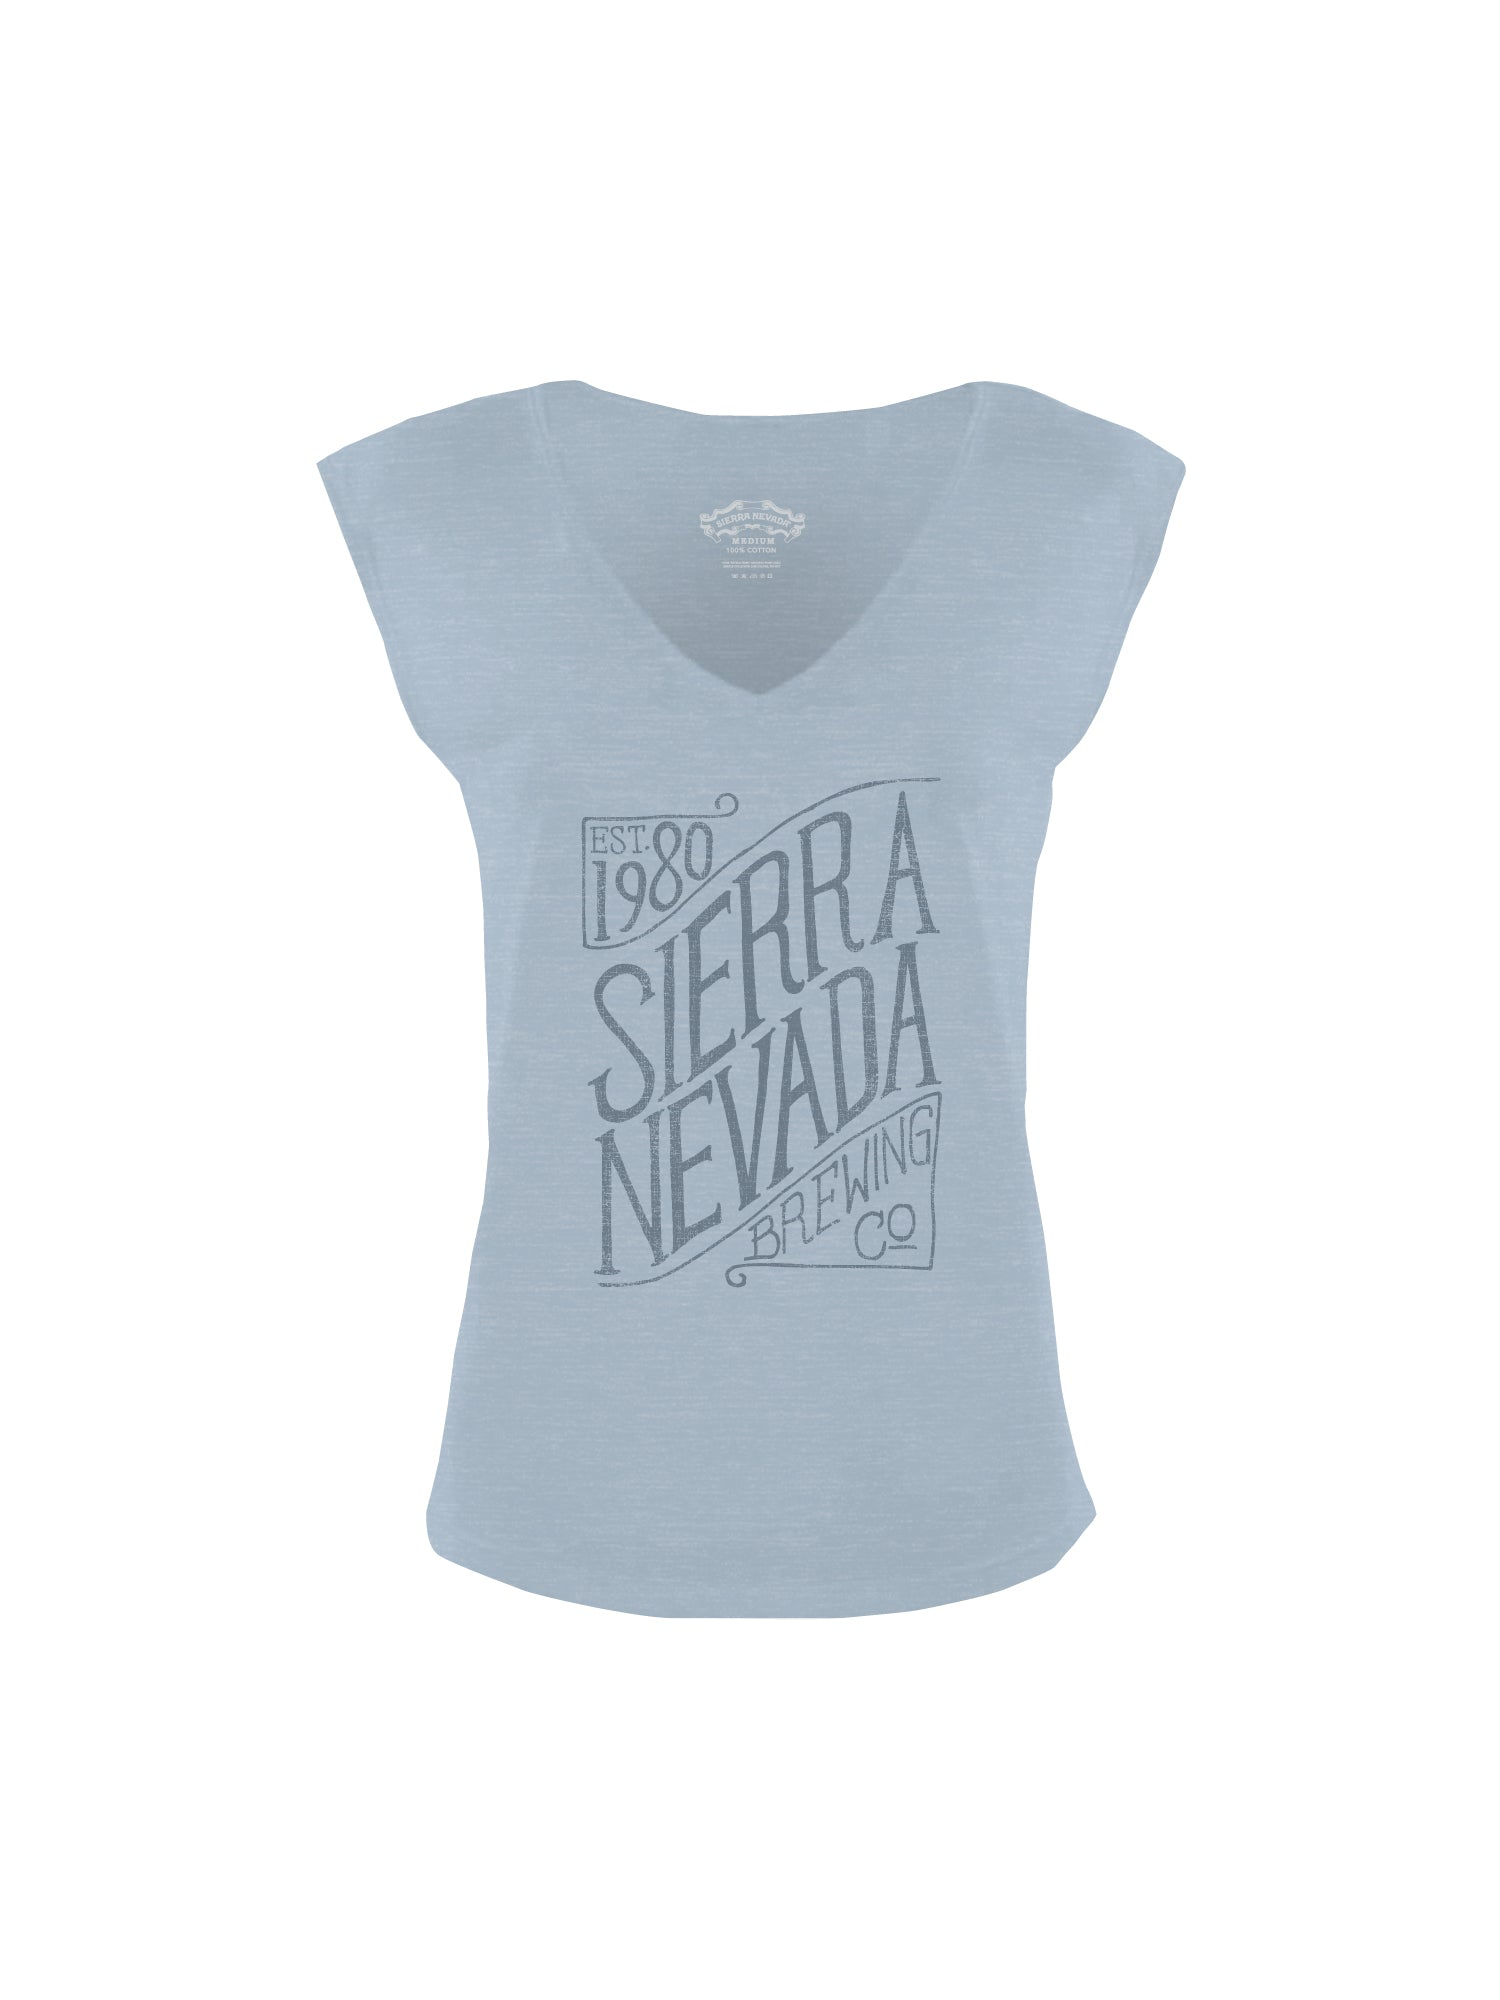 SCRIPT WOMEN VNECK- LIGHT BLUE - Anderson Bros Design and Supply